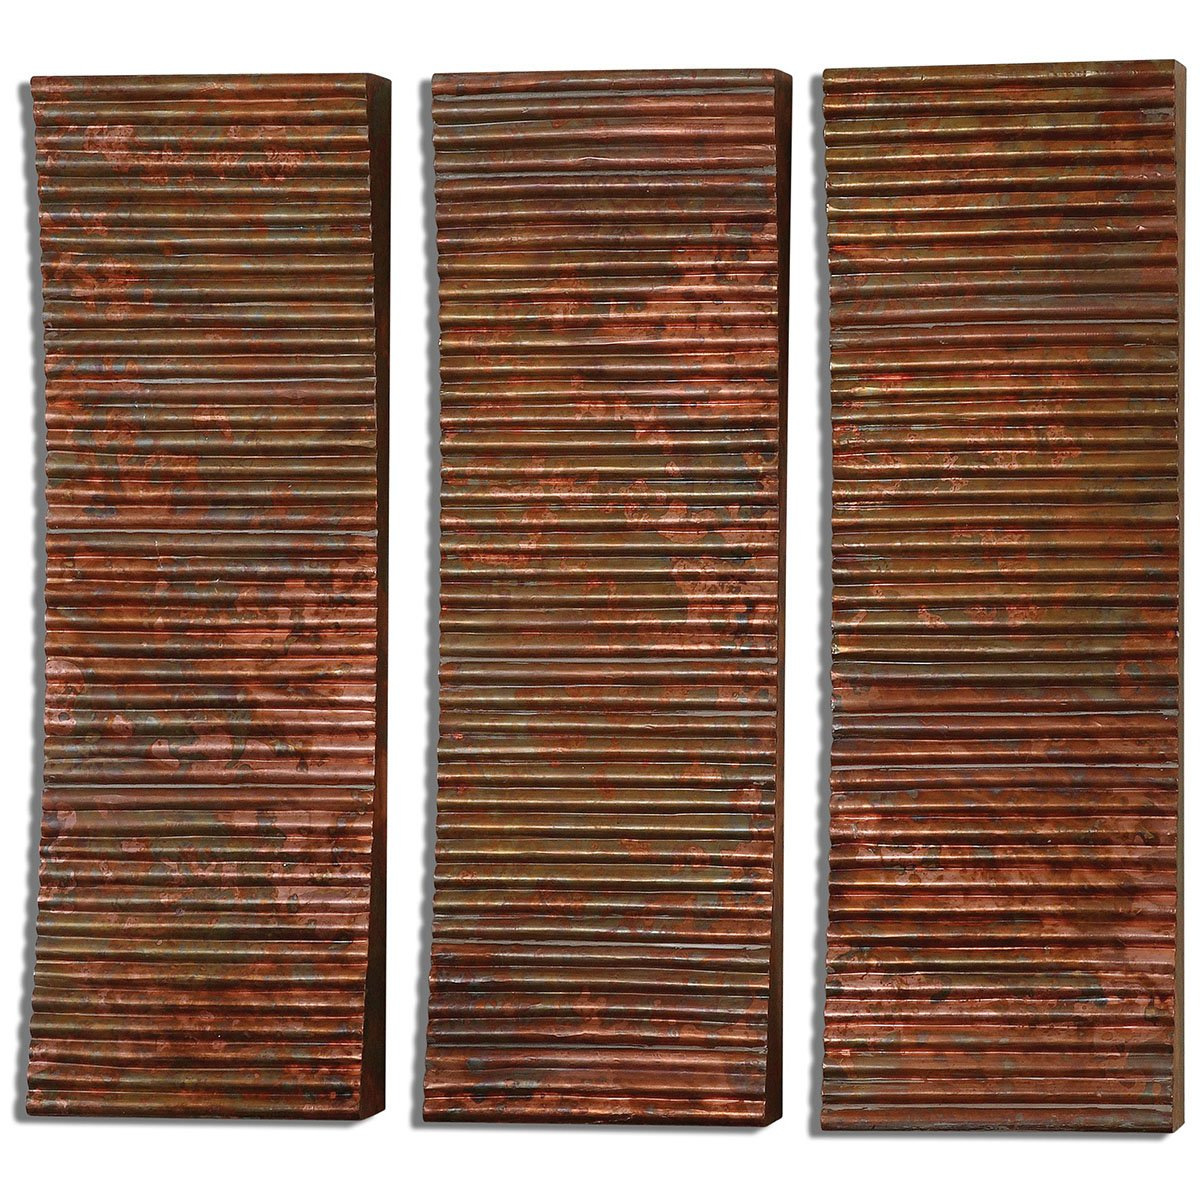 Amazon.com: Uttermost 07064 Adara Copper Wall Art (Set of 3): Home ...